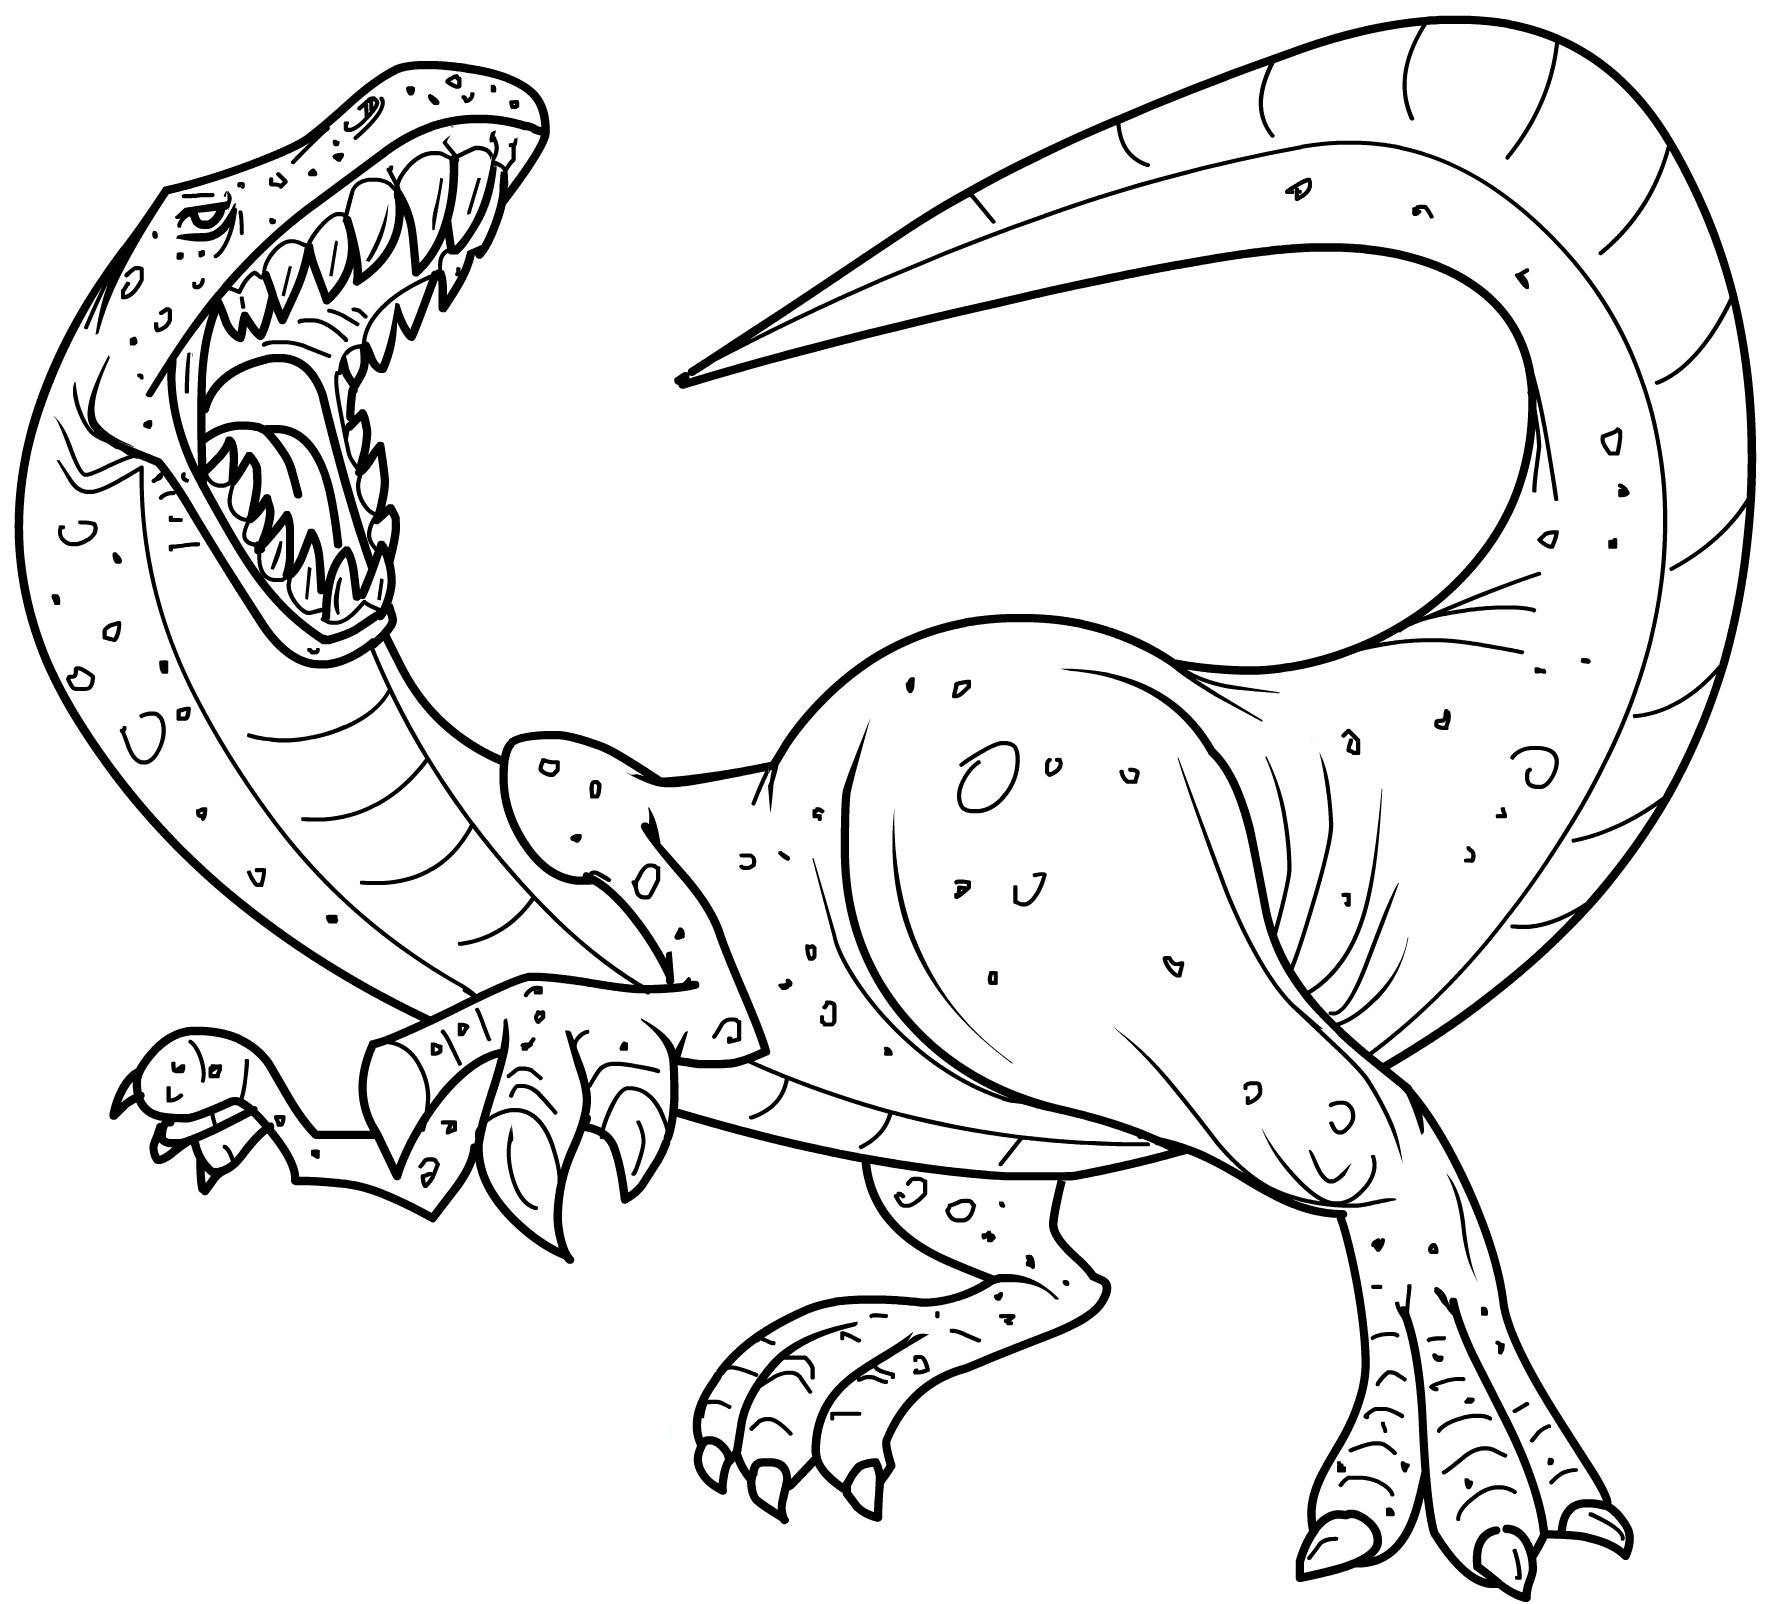 dinosaurs coloring pages free coloring pages dinosaur free printable coloring pages pages free dinosaurs coloring